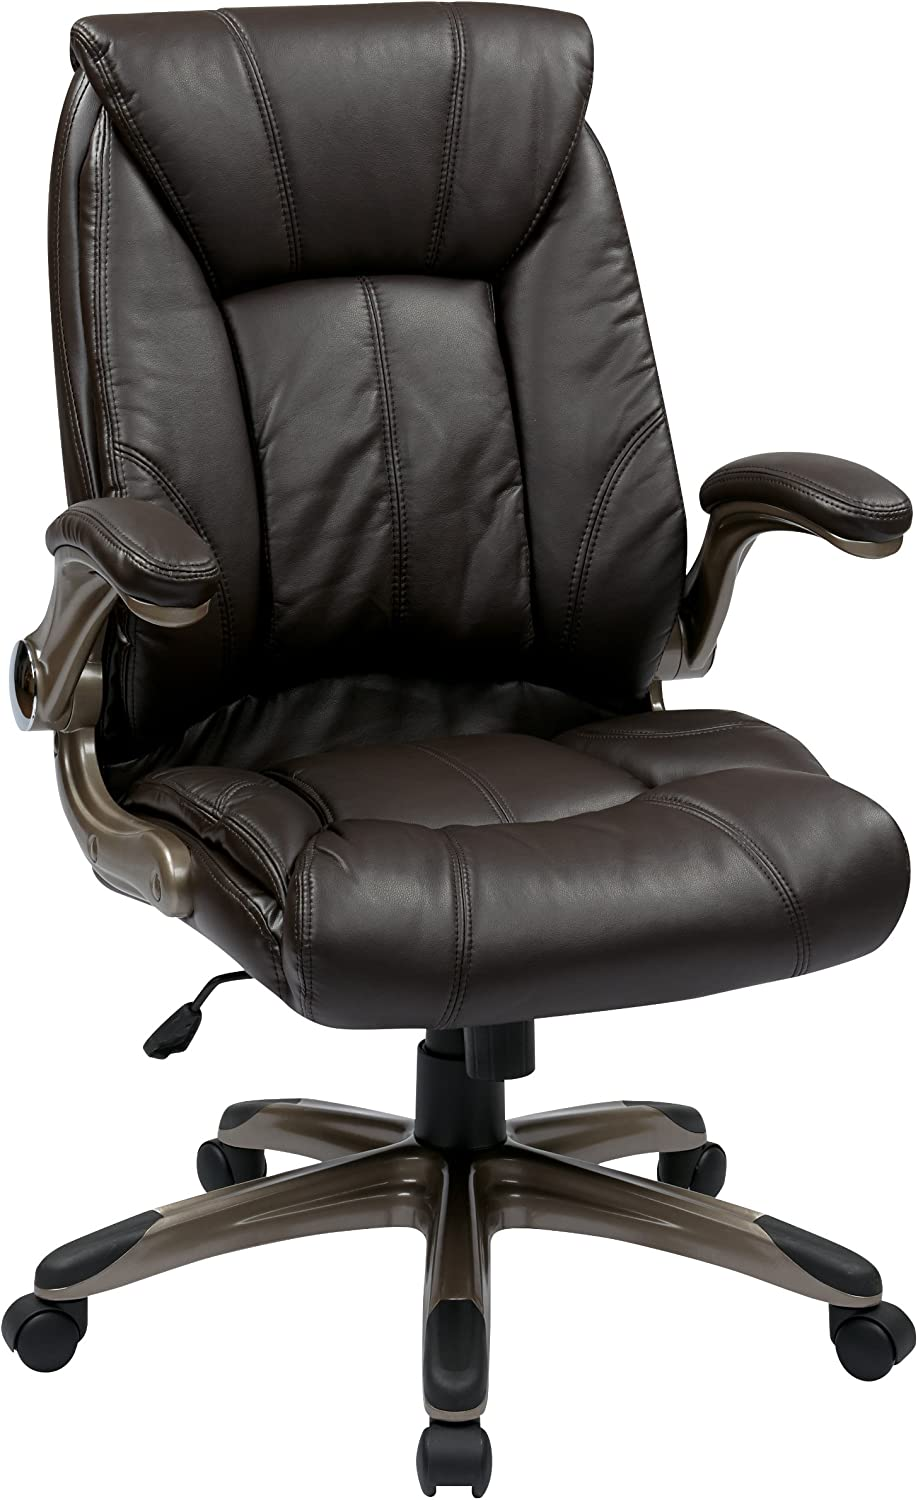 Office Star Faux Leather Seat and Mid Back Executive Chair with Padded Arms and Cocoa Finish Accents, Espresso